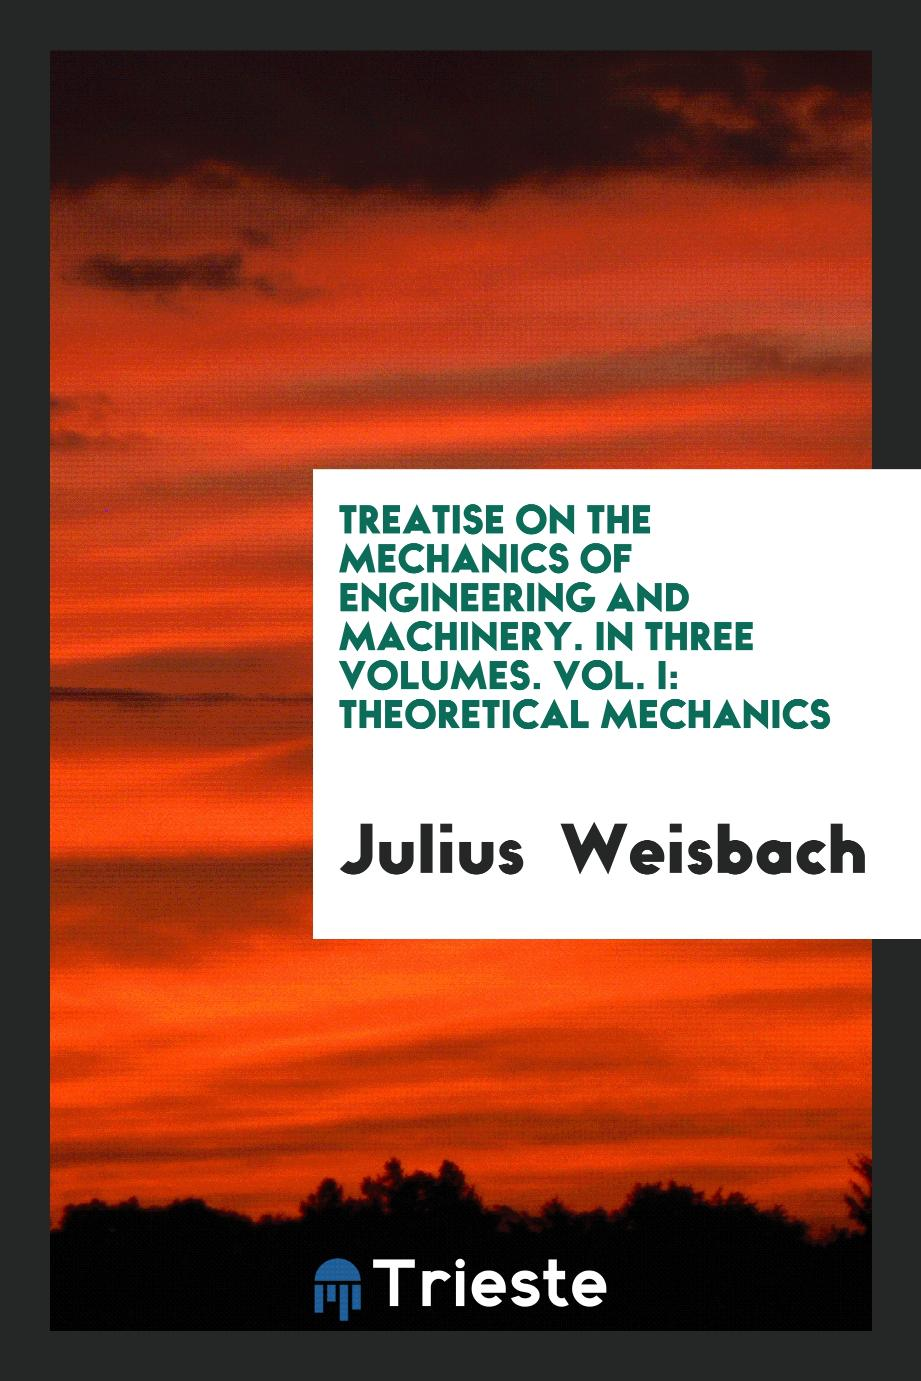 Treatise on the Mechanics of Engineering and Machinery. In Three Volumes. Vol. I: Theoretical Mechanics